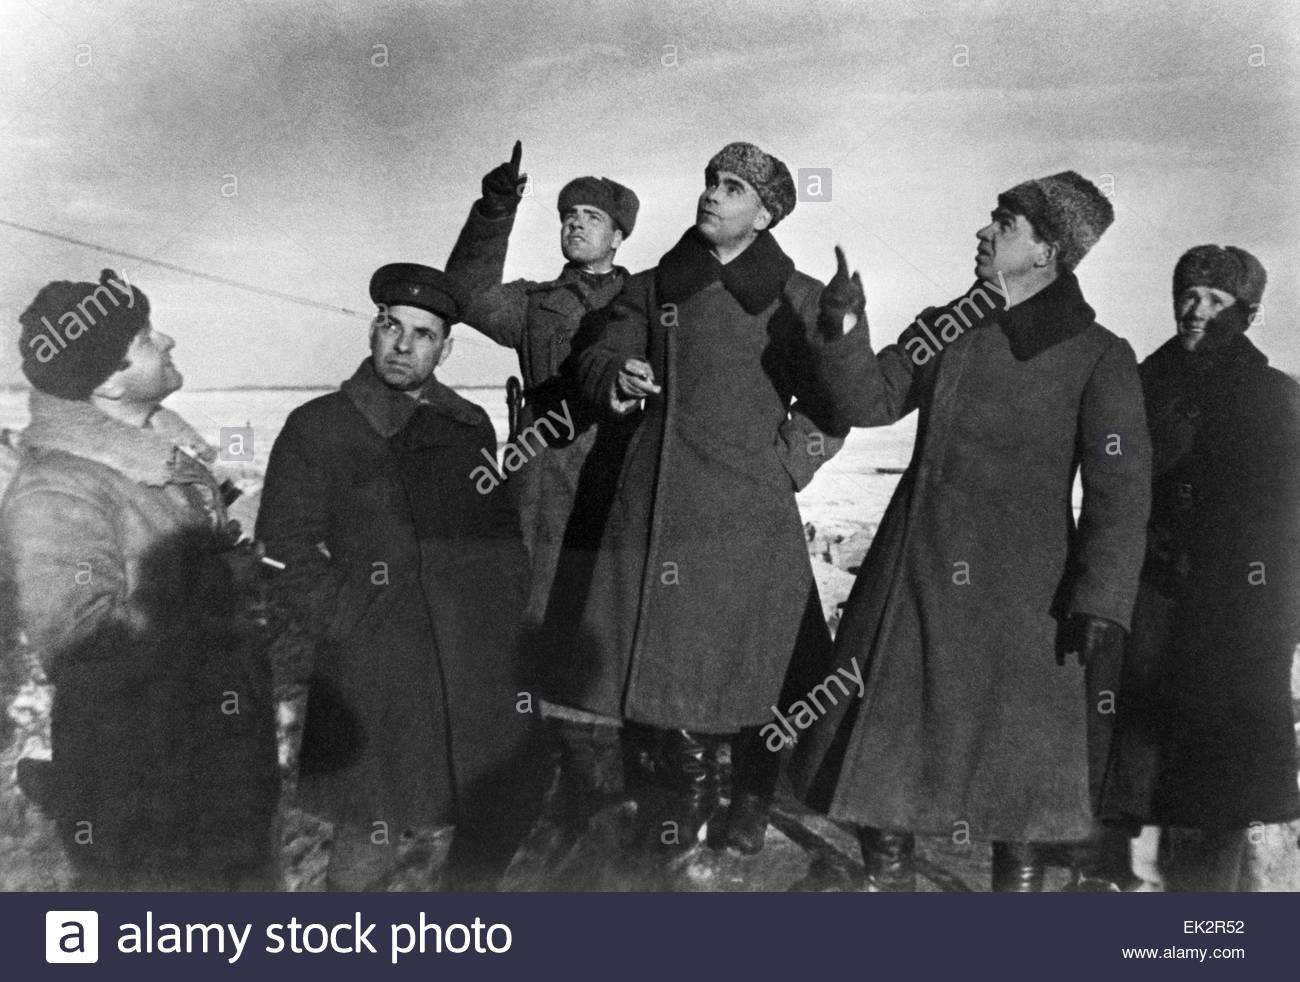 Stalingrad Great Stock Photos & Stalingrad Great Stock Images.